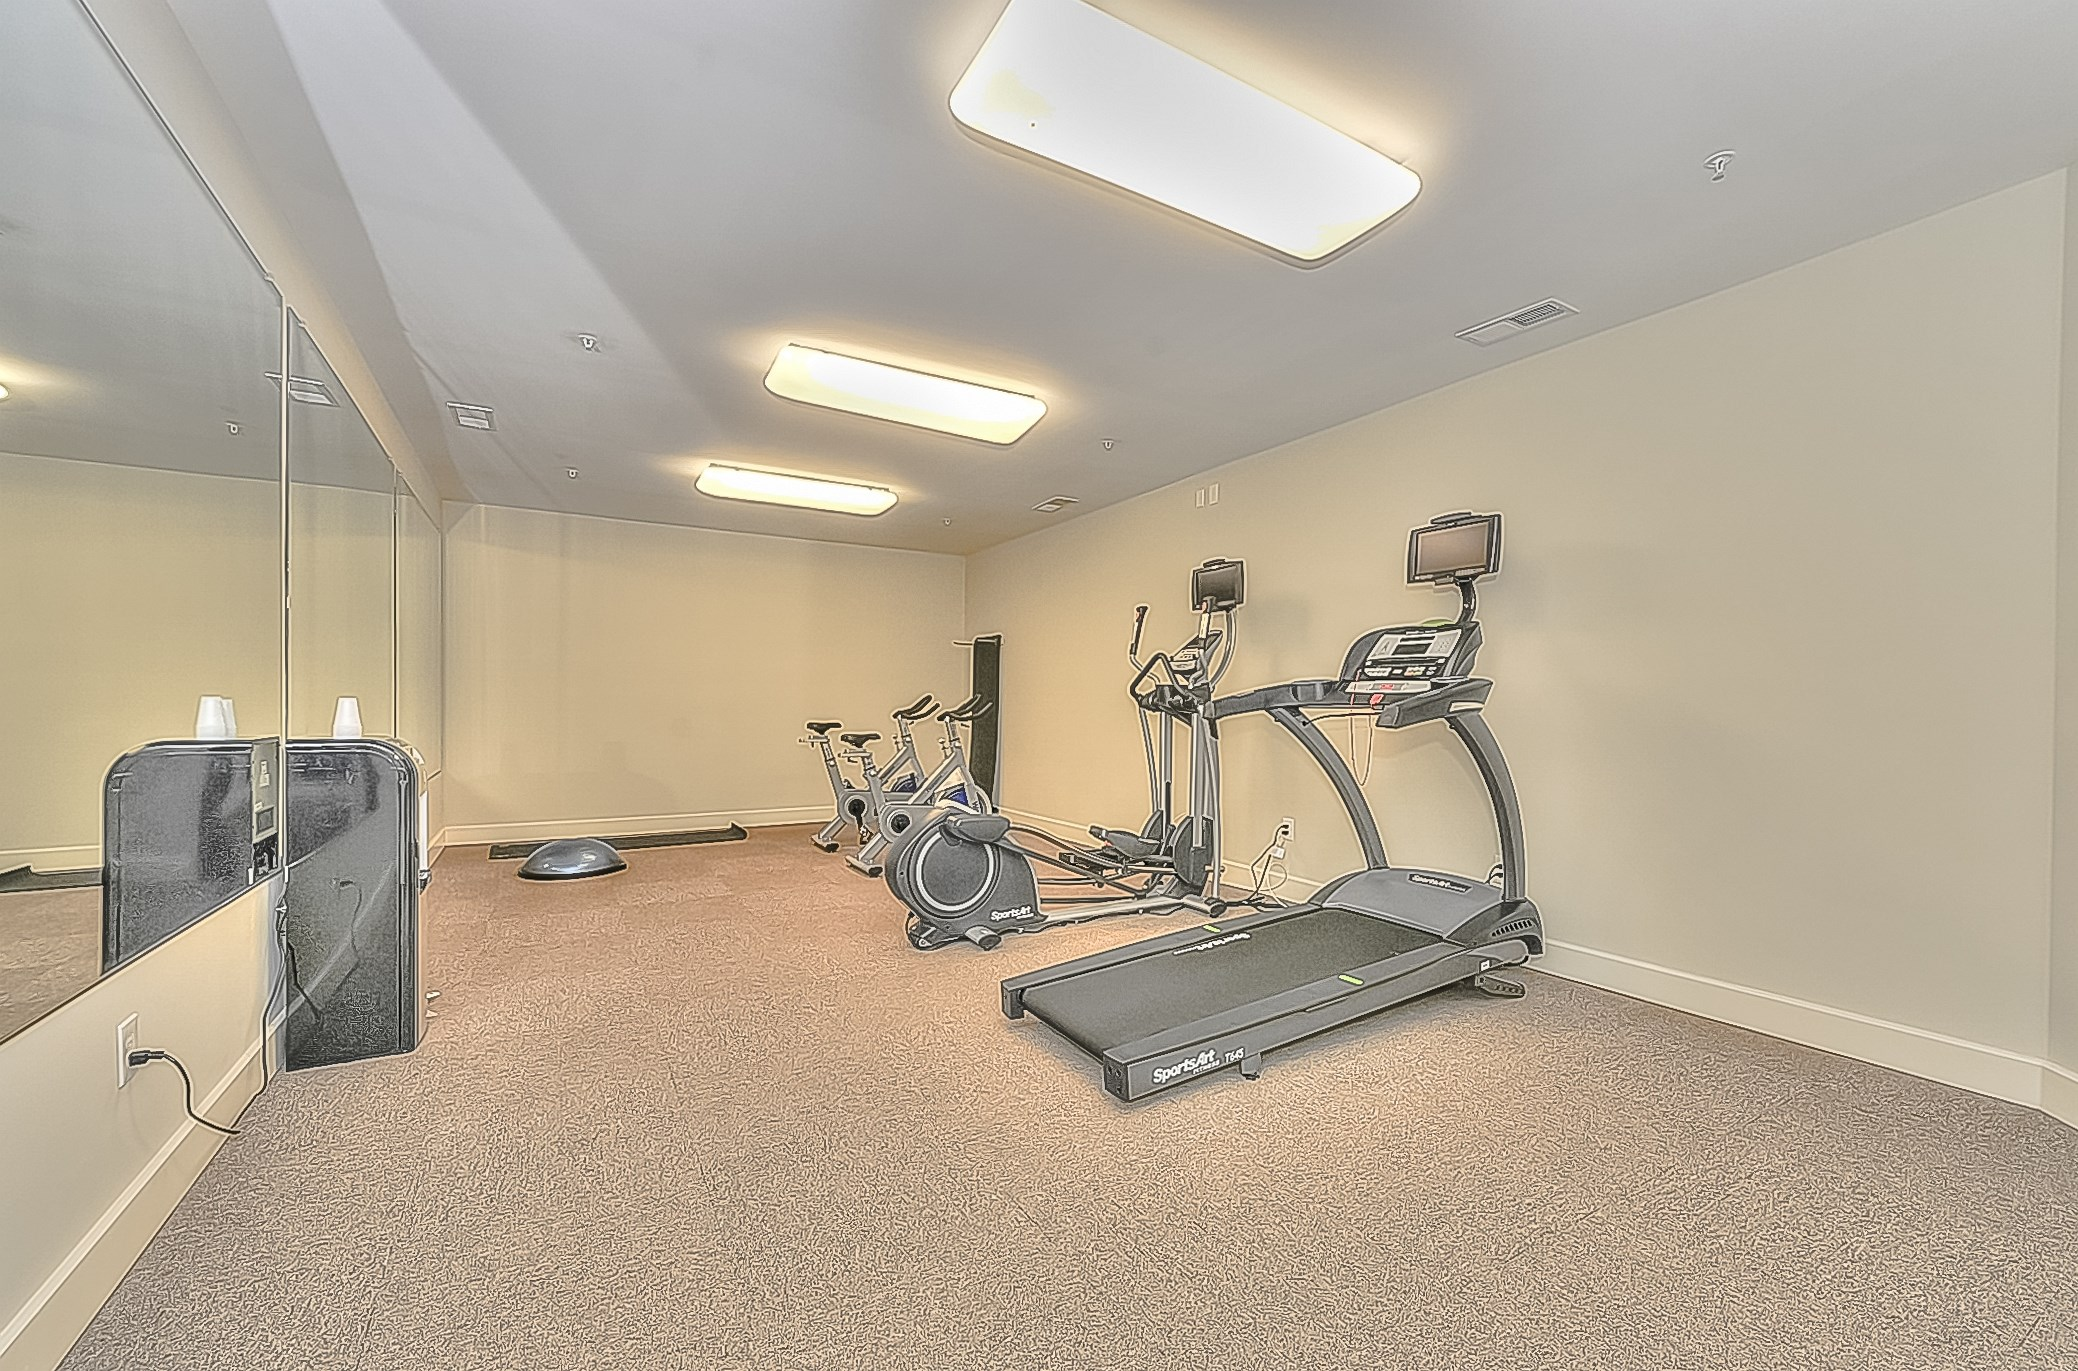 030_Exercise Room.jpg